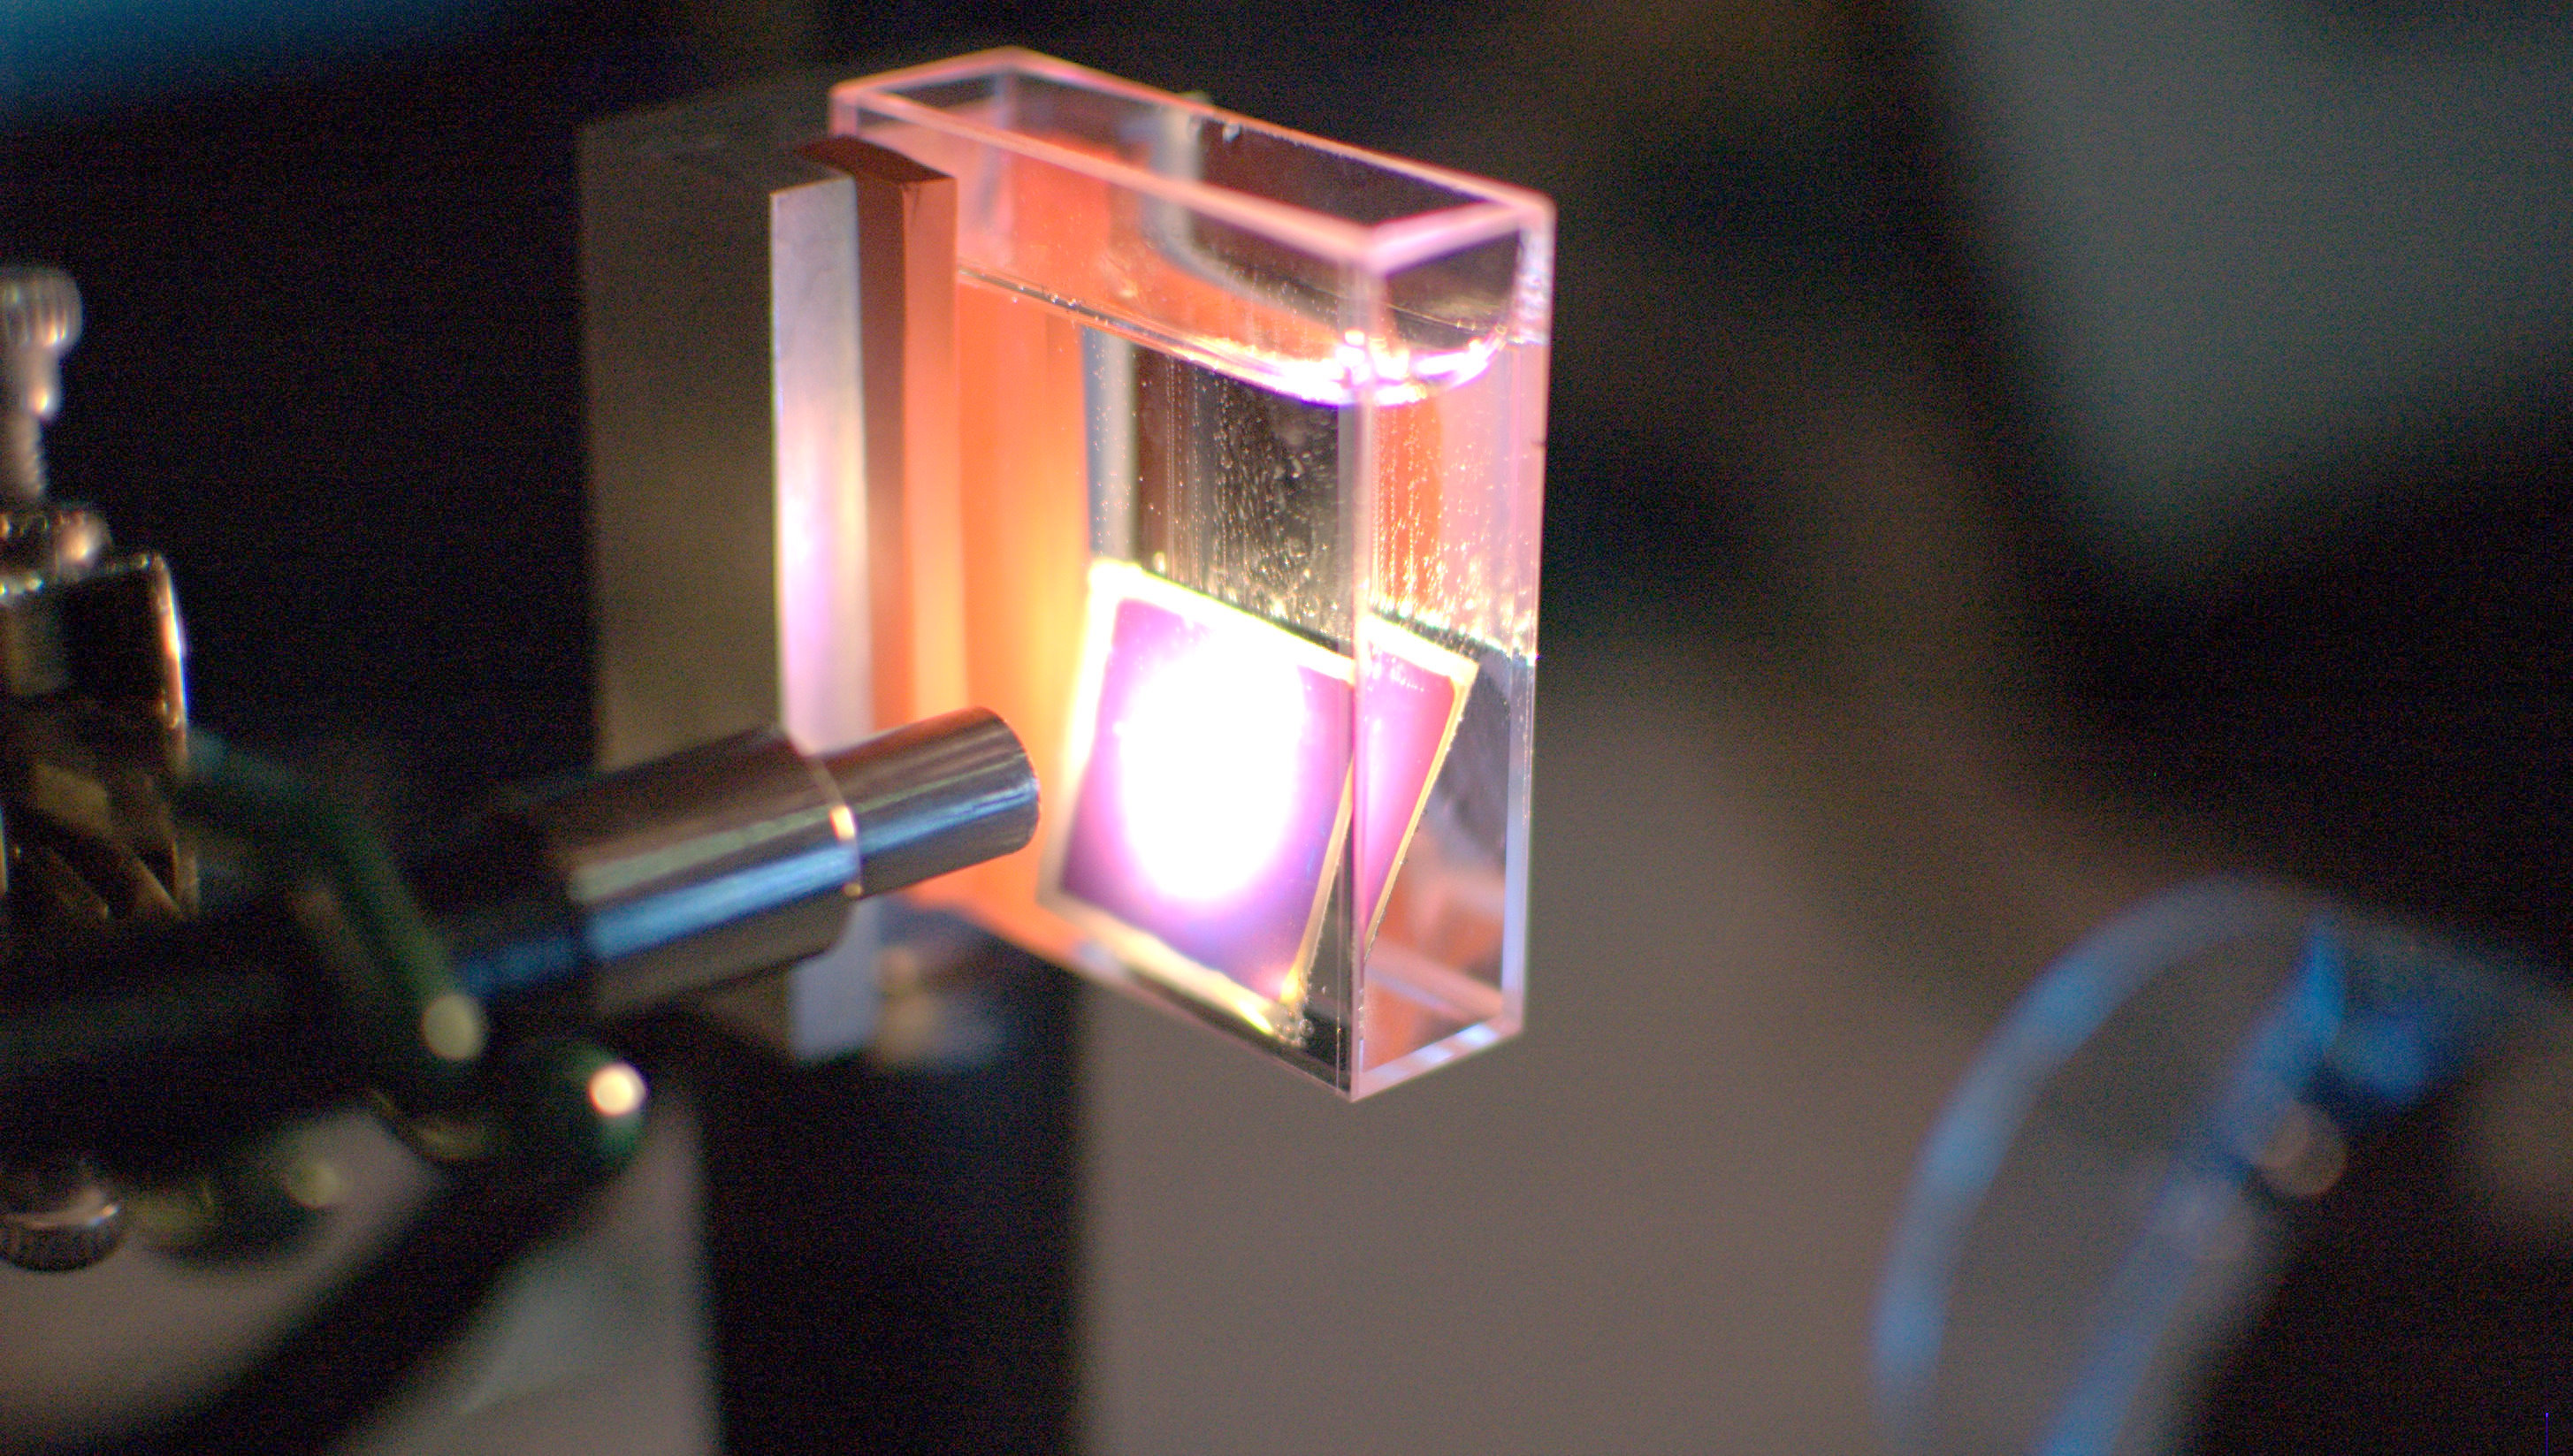 Making hydrogen gas (the bubbles) from a solar cell in water, a Sun Catalytix prototype.